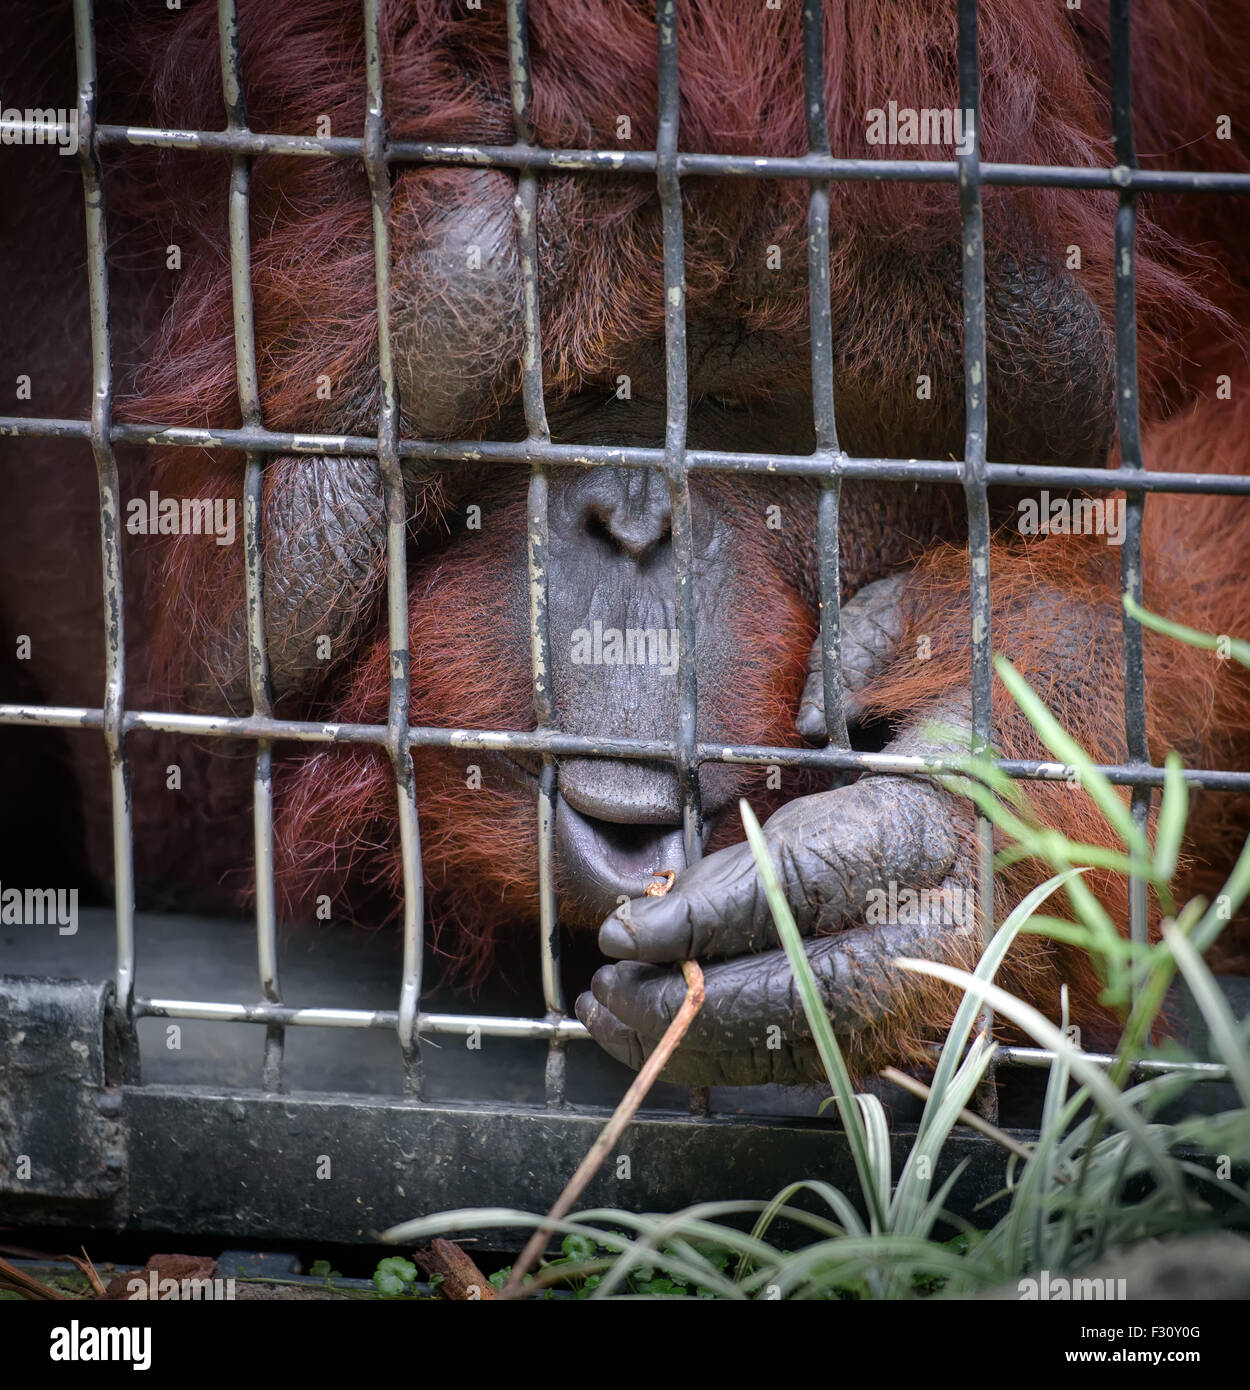 Orangutan in a cage reaching grass through the cells - Stock Image